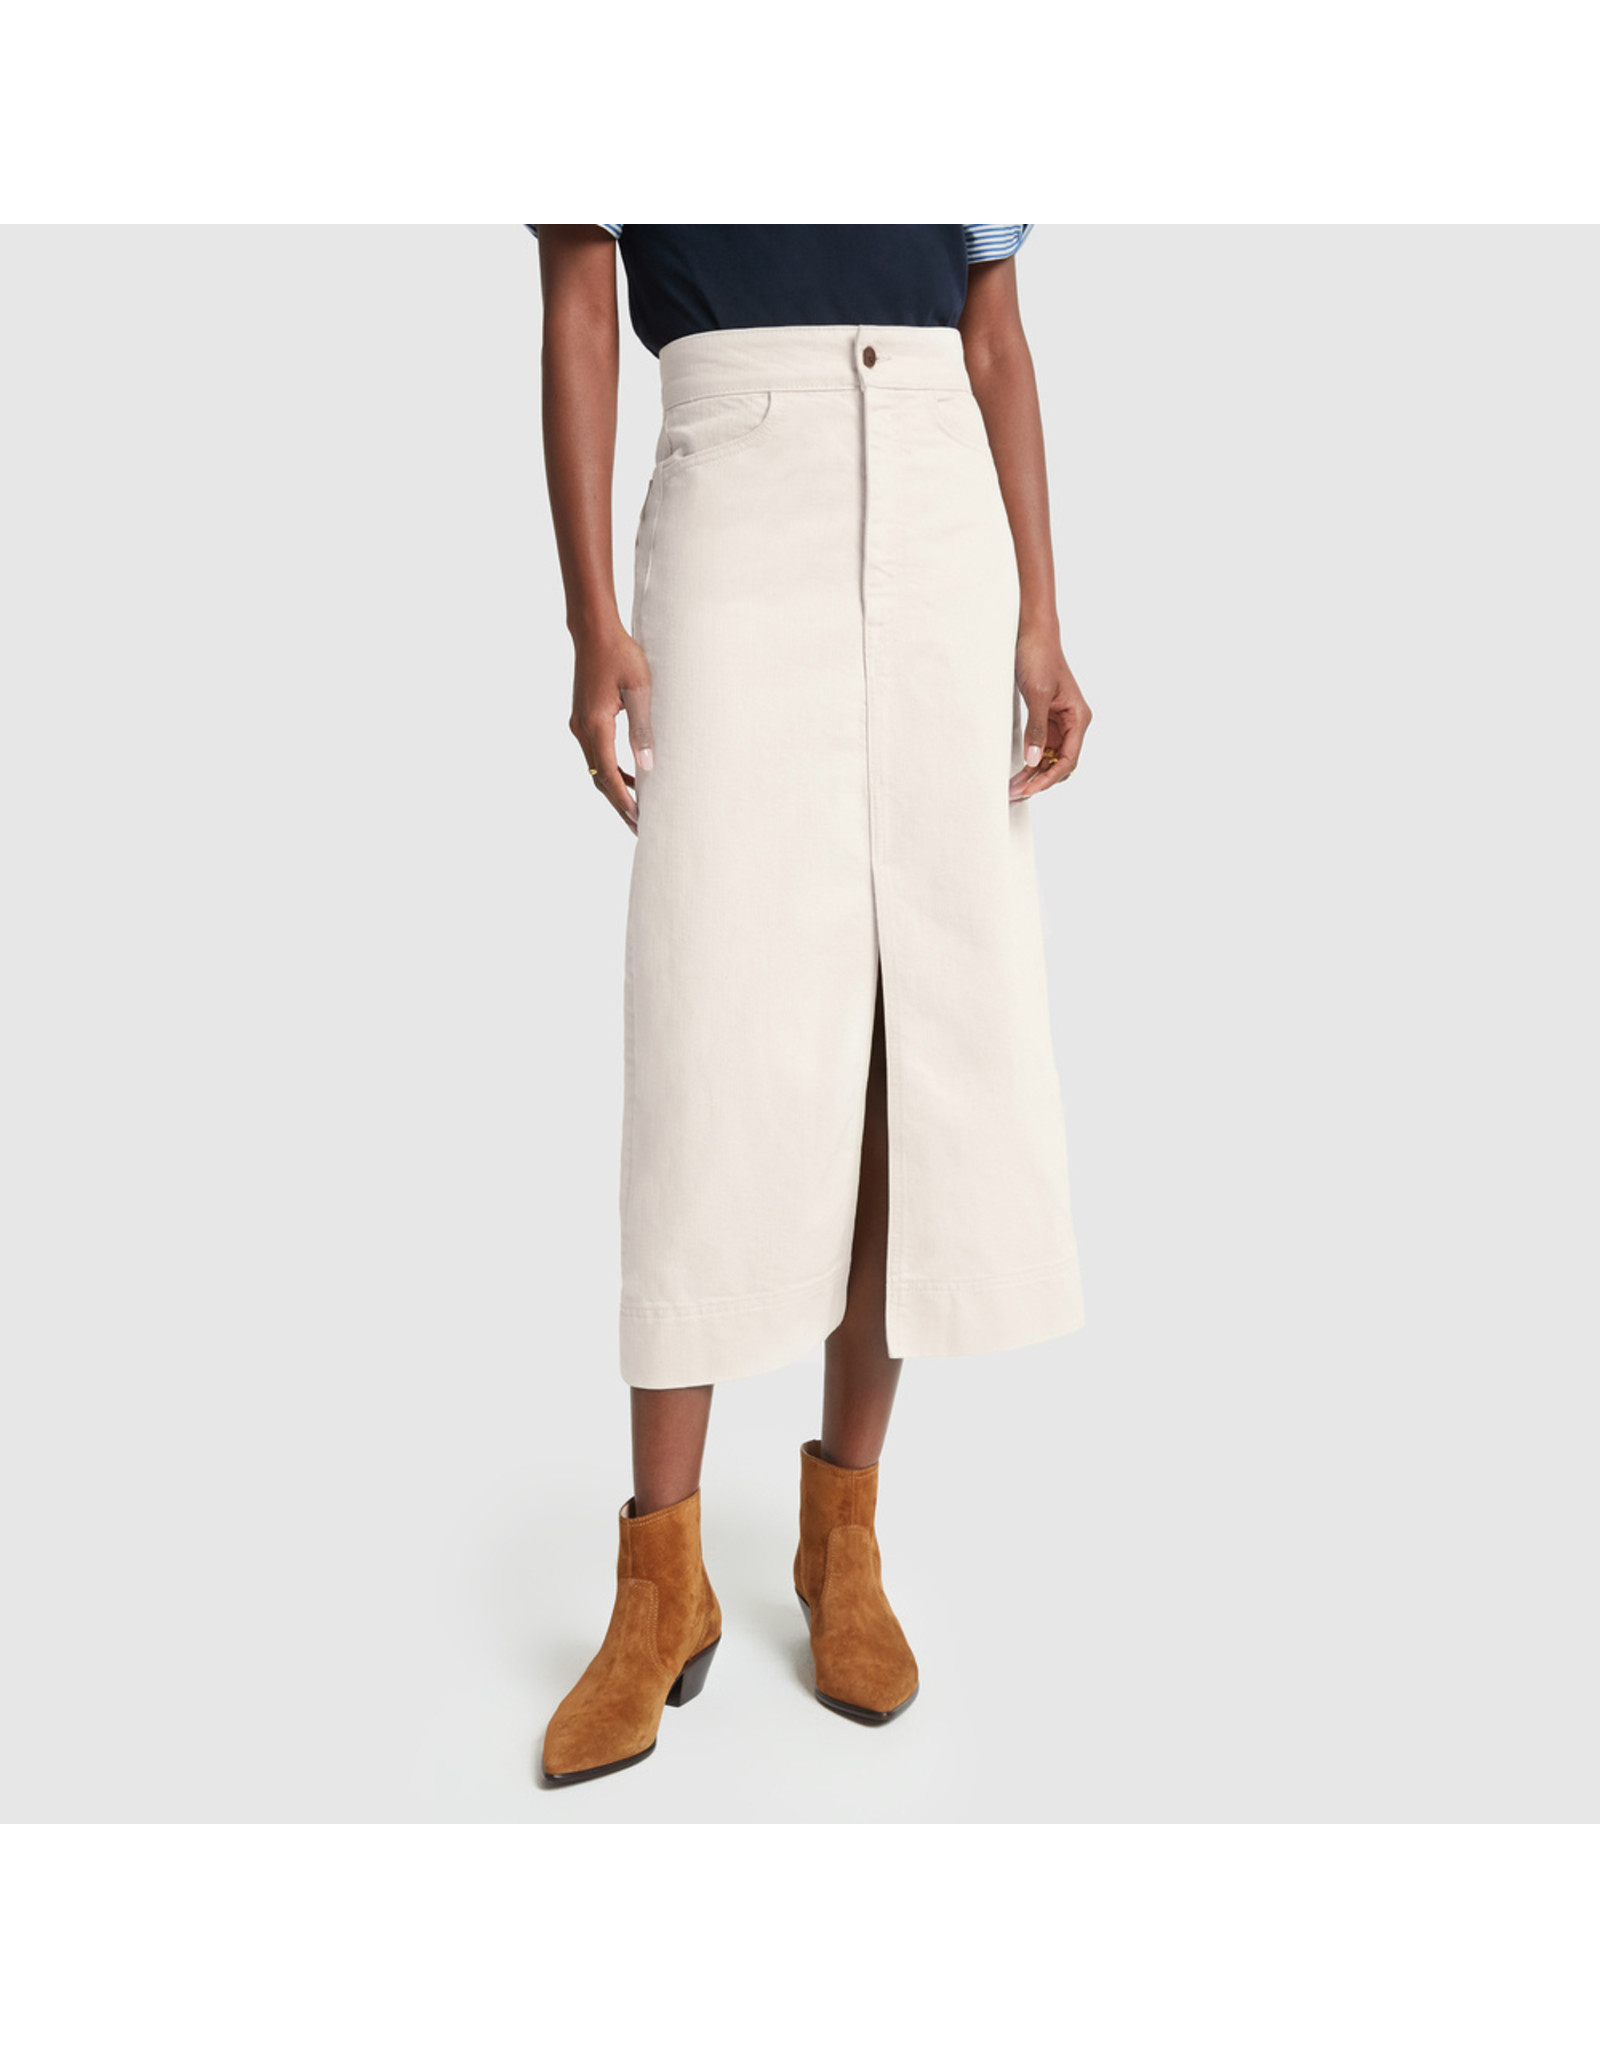 G. Label G. Label Yu Denim Pencil Skirt (Size: 27, Color: Natural)